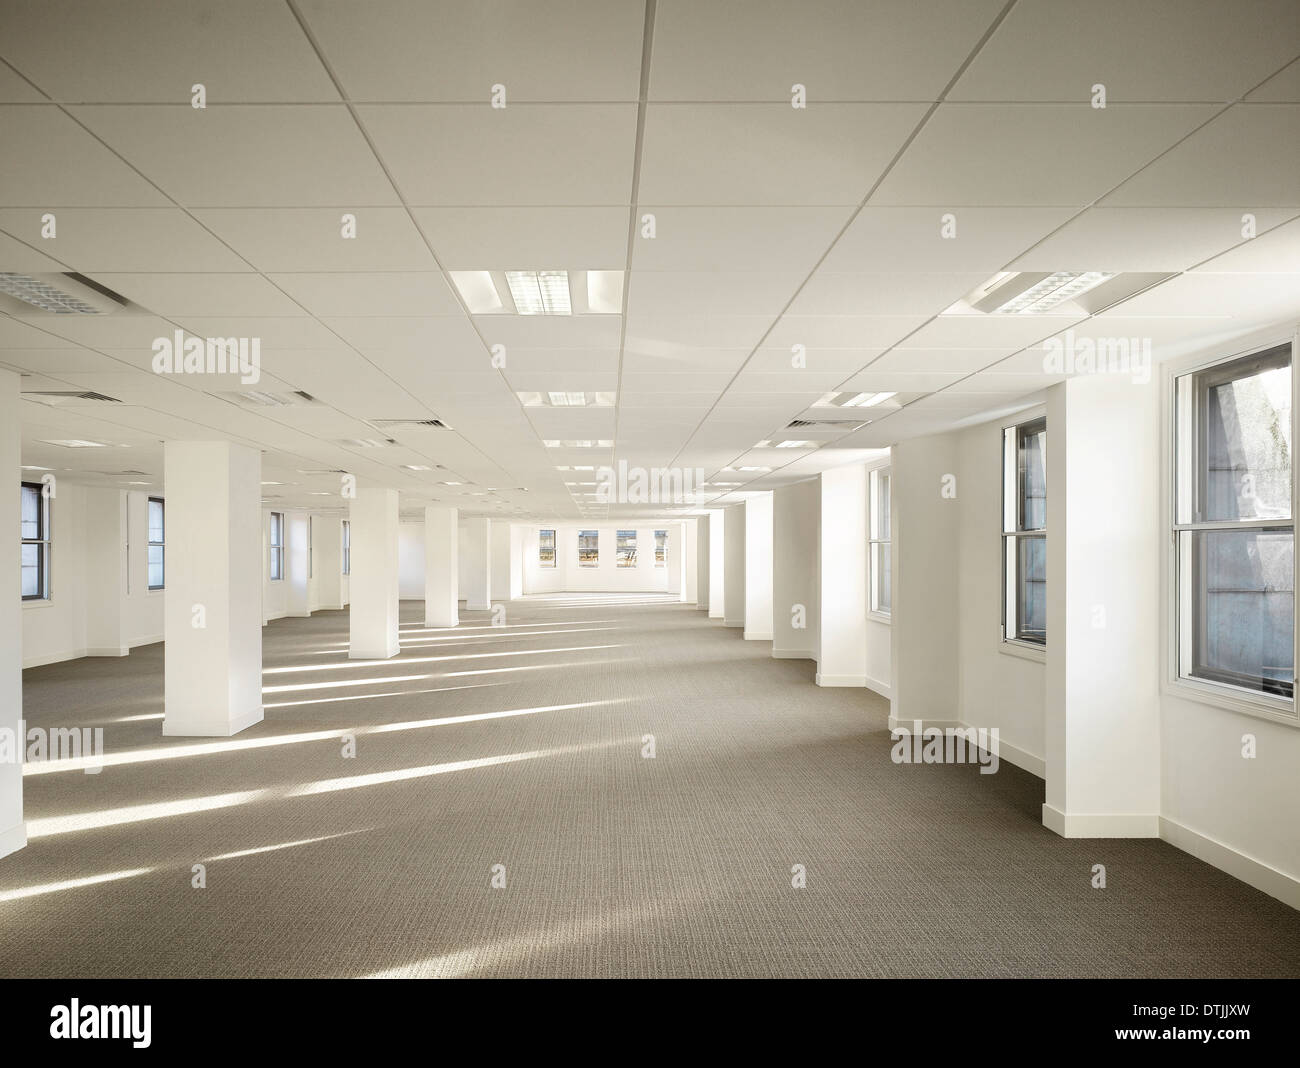 Amazing Interior Of Empty Office Space In Commercial Building King Street Largest Home Design Picture Inspirations Pitcheantrous